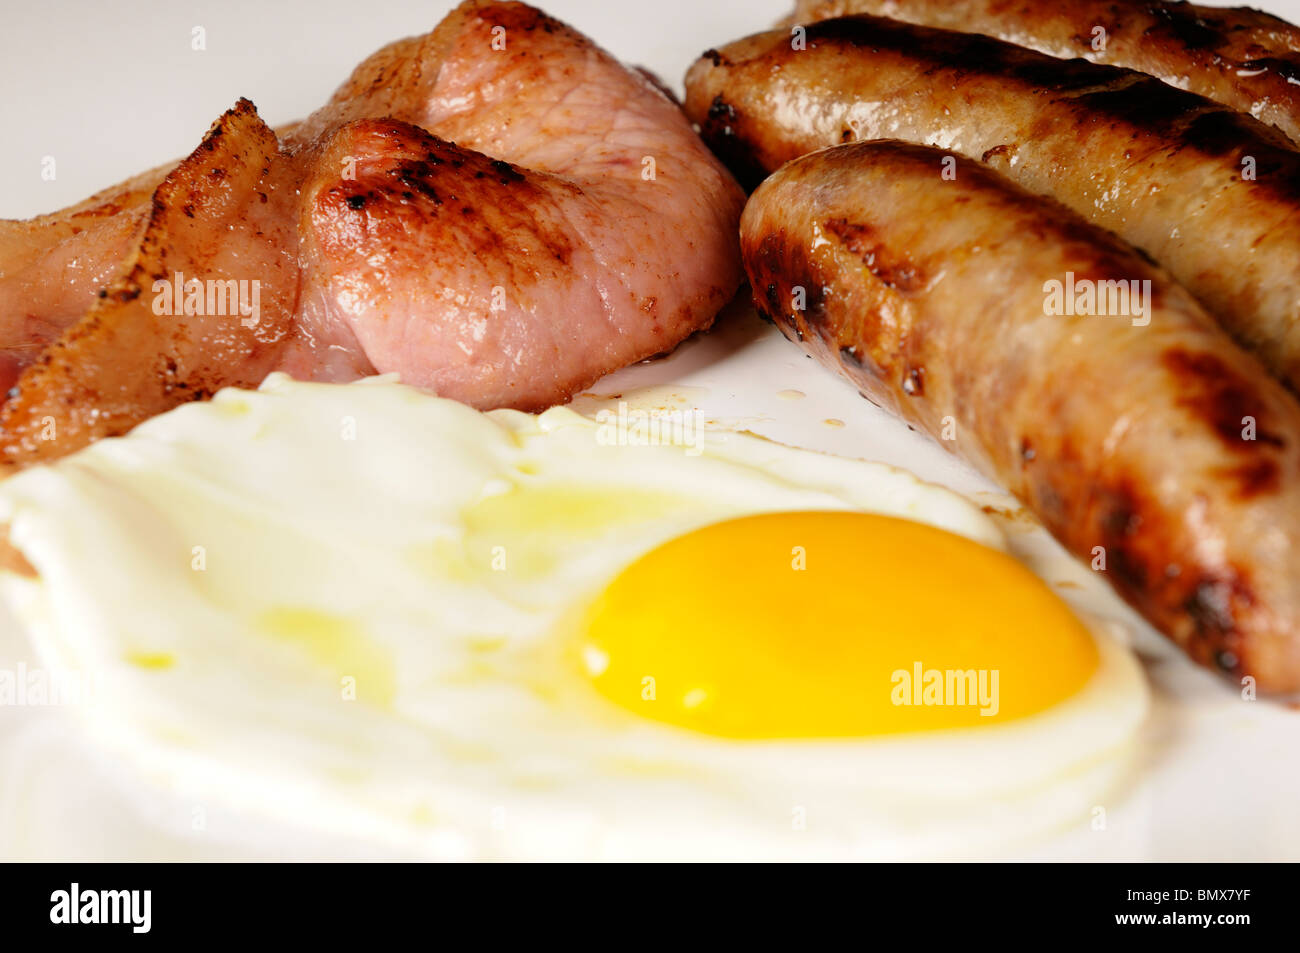 Stock photo of a traditional English Breakfast of sausages, fried eggs and bacon. Cholesterol hell but nice. - Stock Image